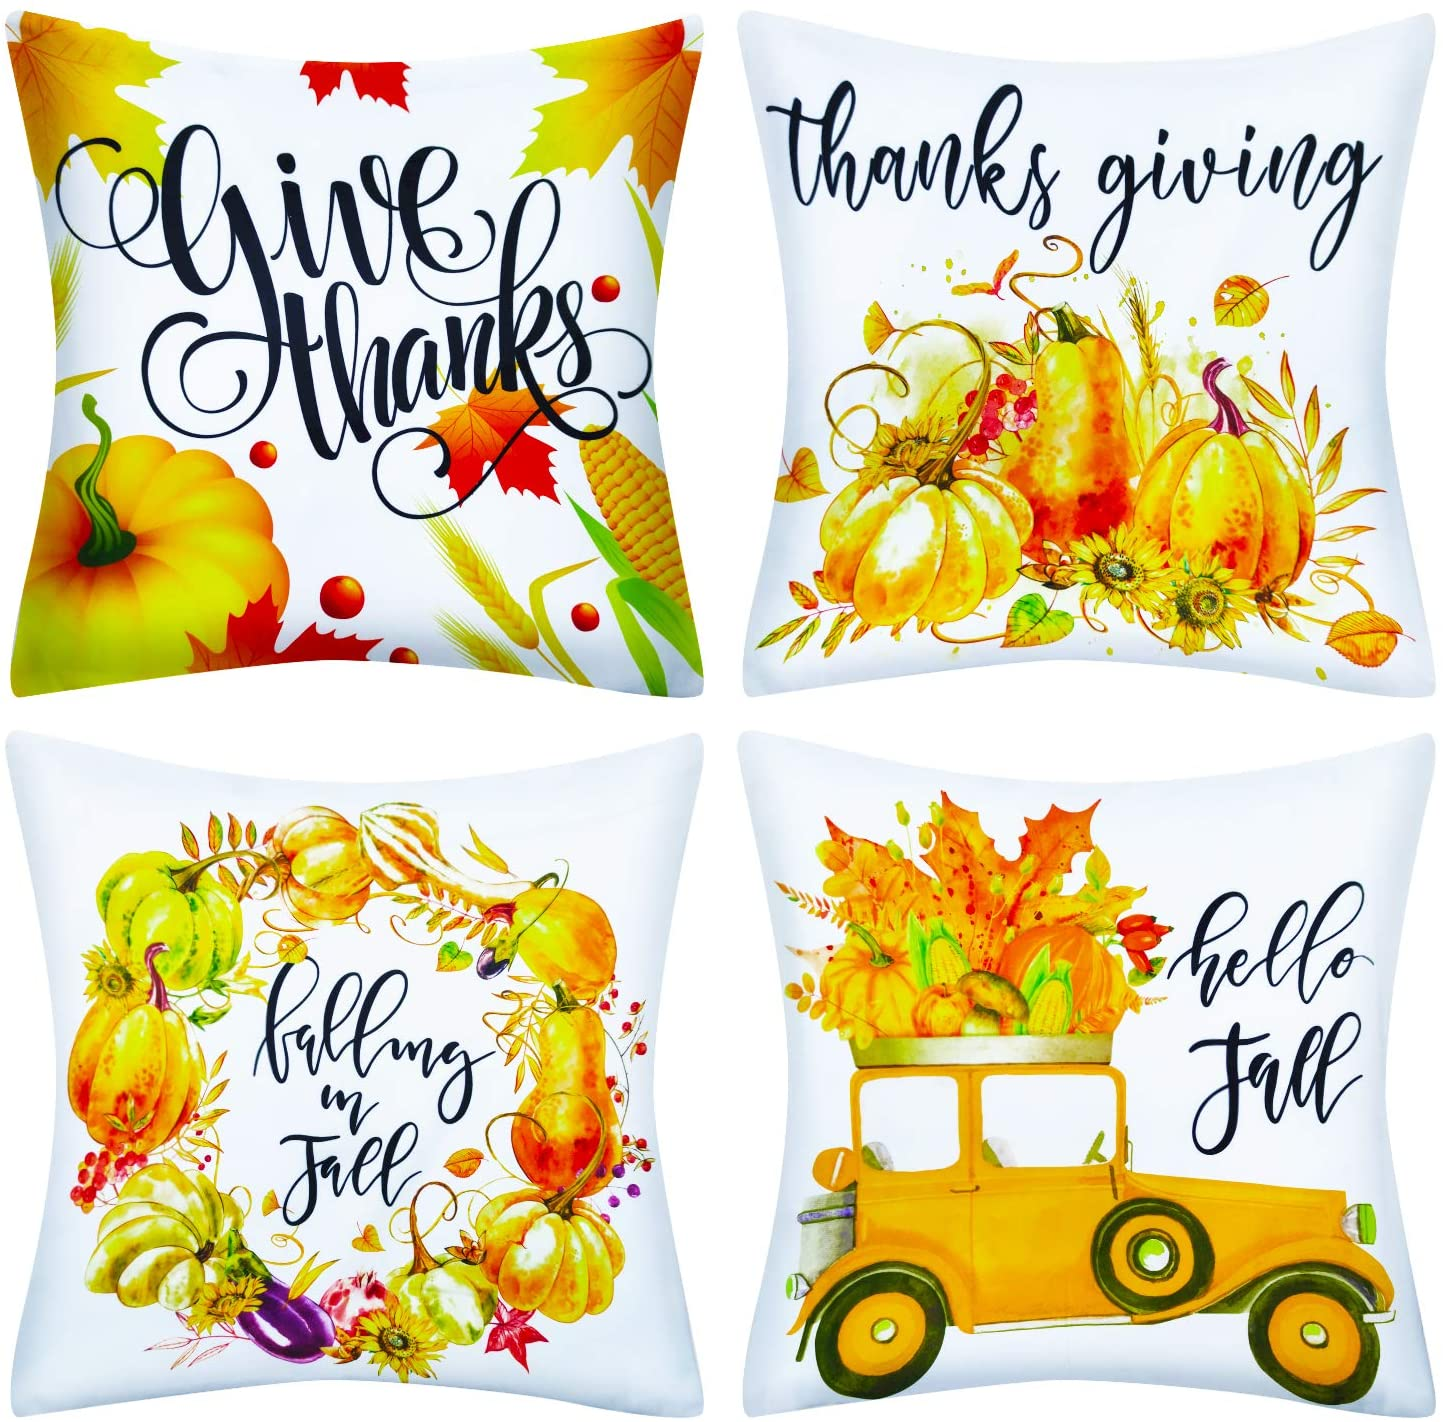 Decorx 4pack Fall Pillow Covers 18 X18 Fall Pumpkin Decorative Pillow Covers Cushion Halloween Thanksgiving Decorations For Home Sofa Couch Bedroom Indoor Outdoor Decor Holiday Pillows Walmart Com Walmart Com